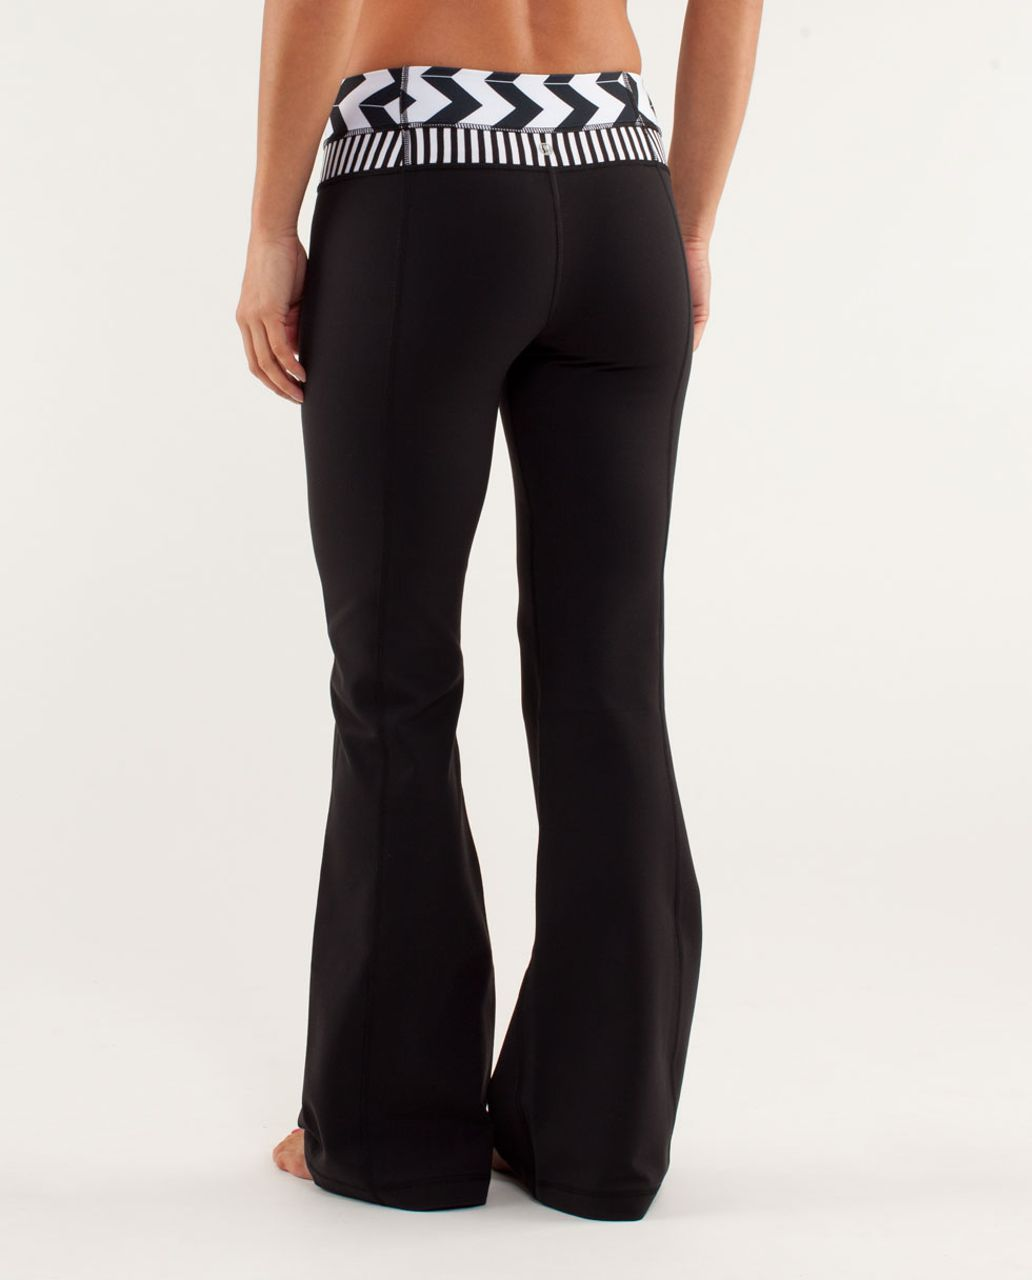 Lululemon Groove Pant *Slim (Regular) - Black / Arrow Chevron White Black / Classic Stripe Black And White